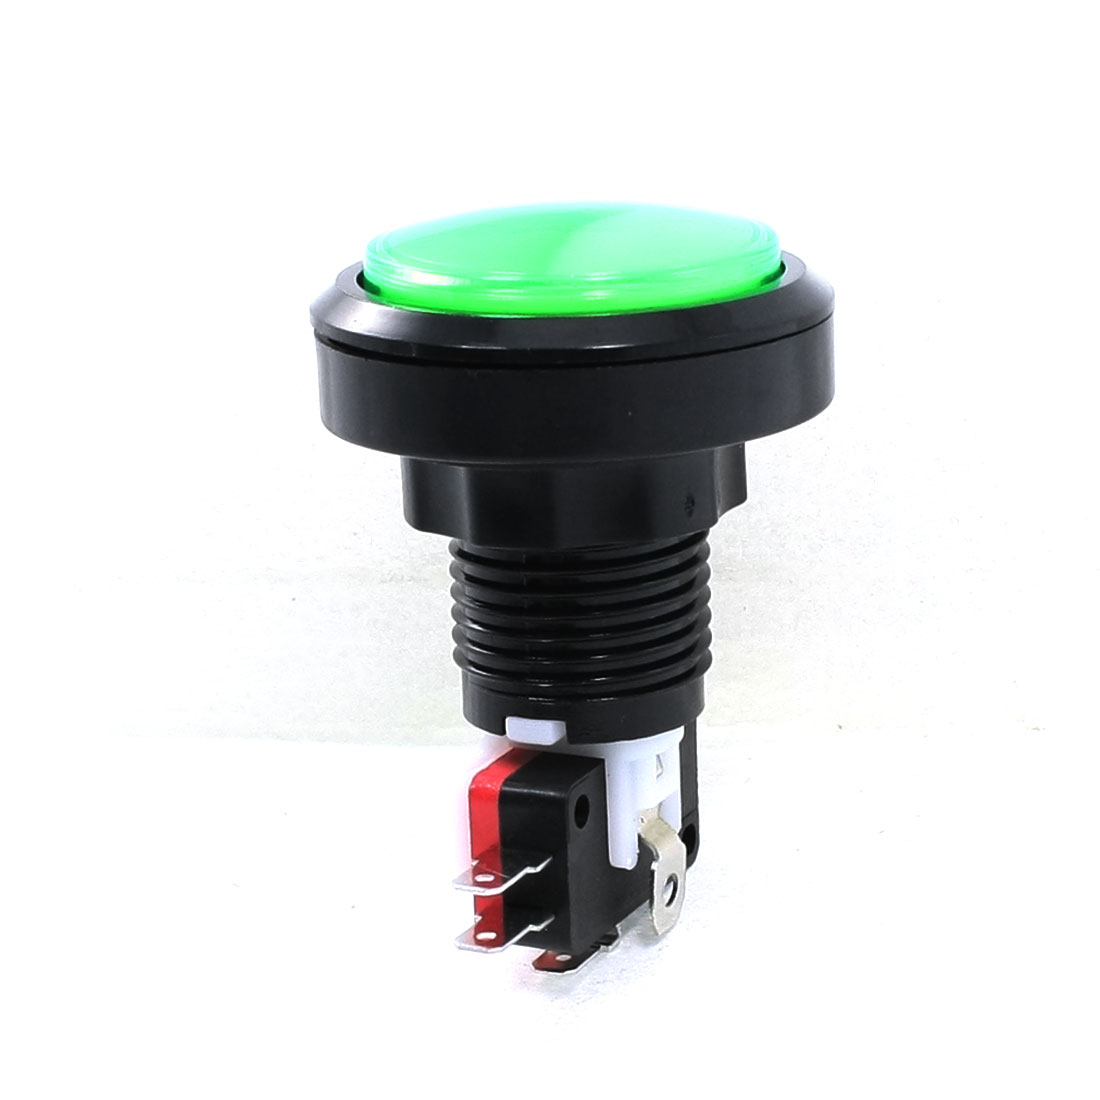 Normally Closed Green Round Button Push Button Switch AC 250V 10A